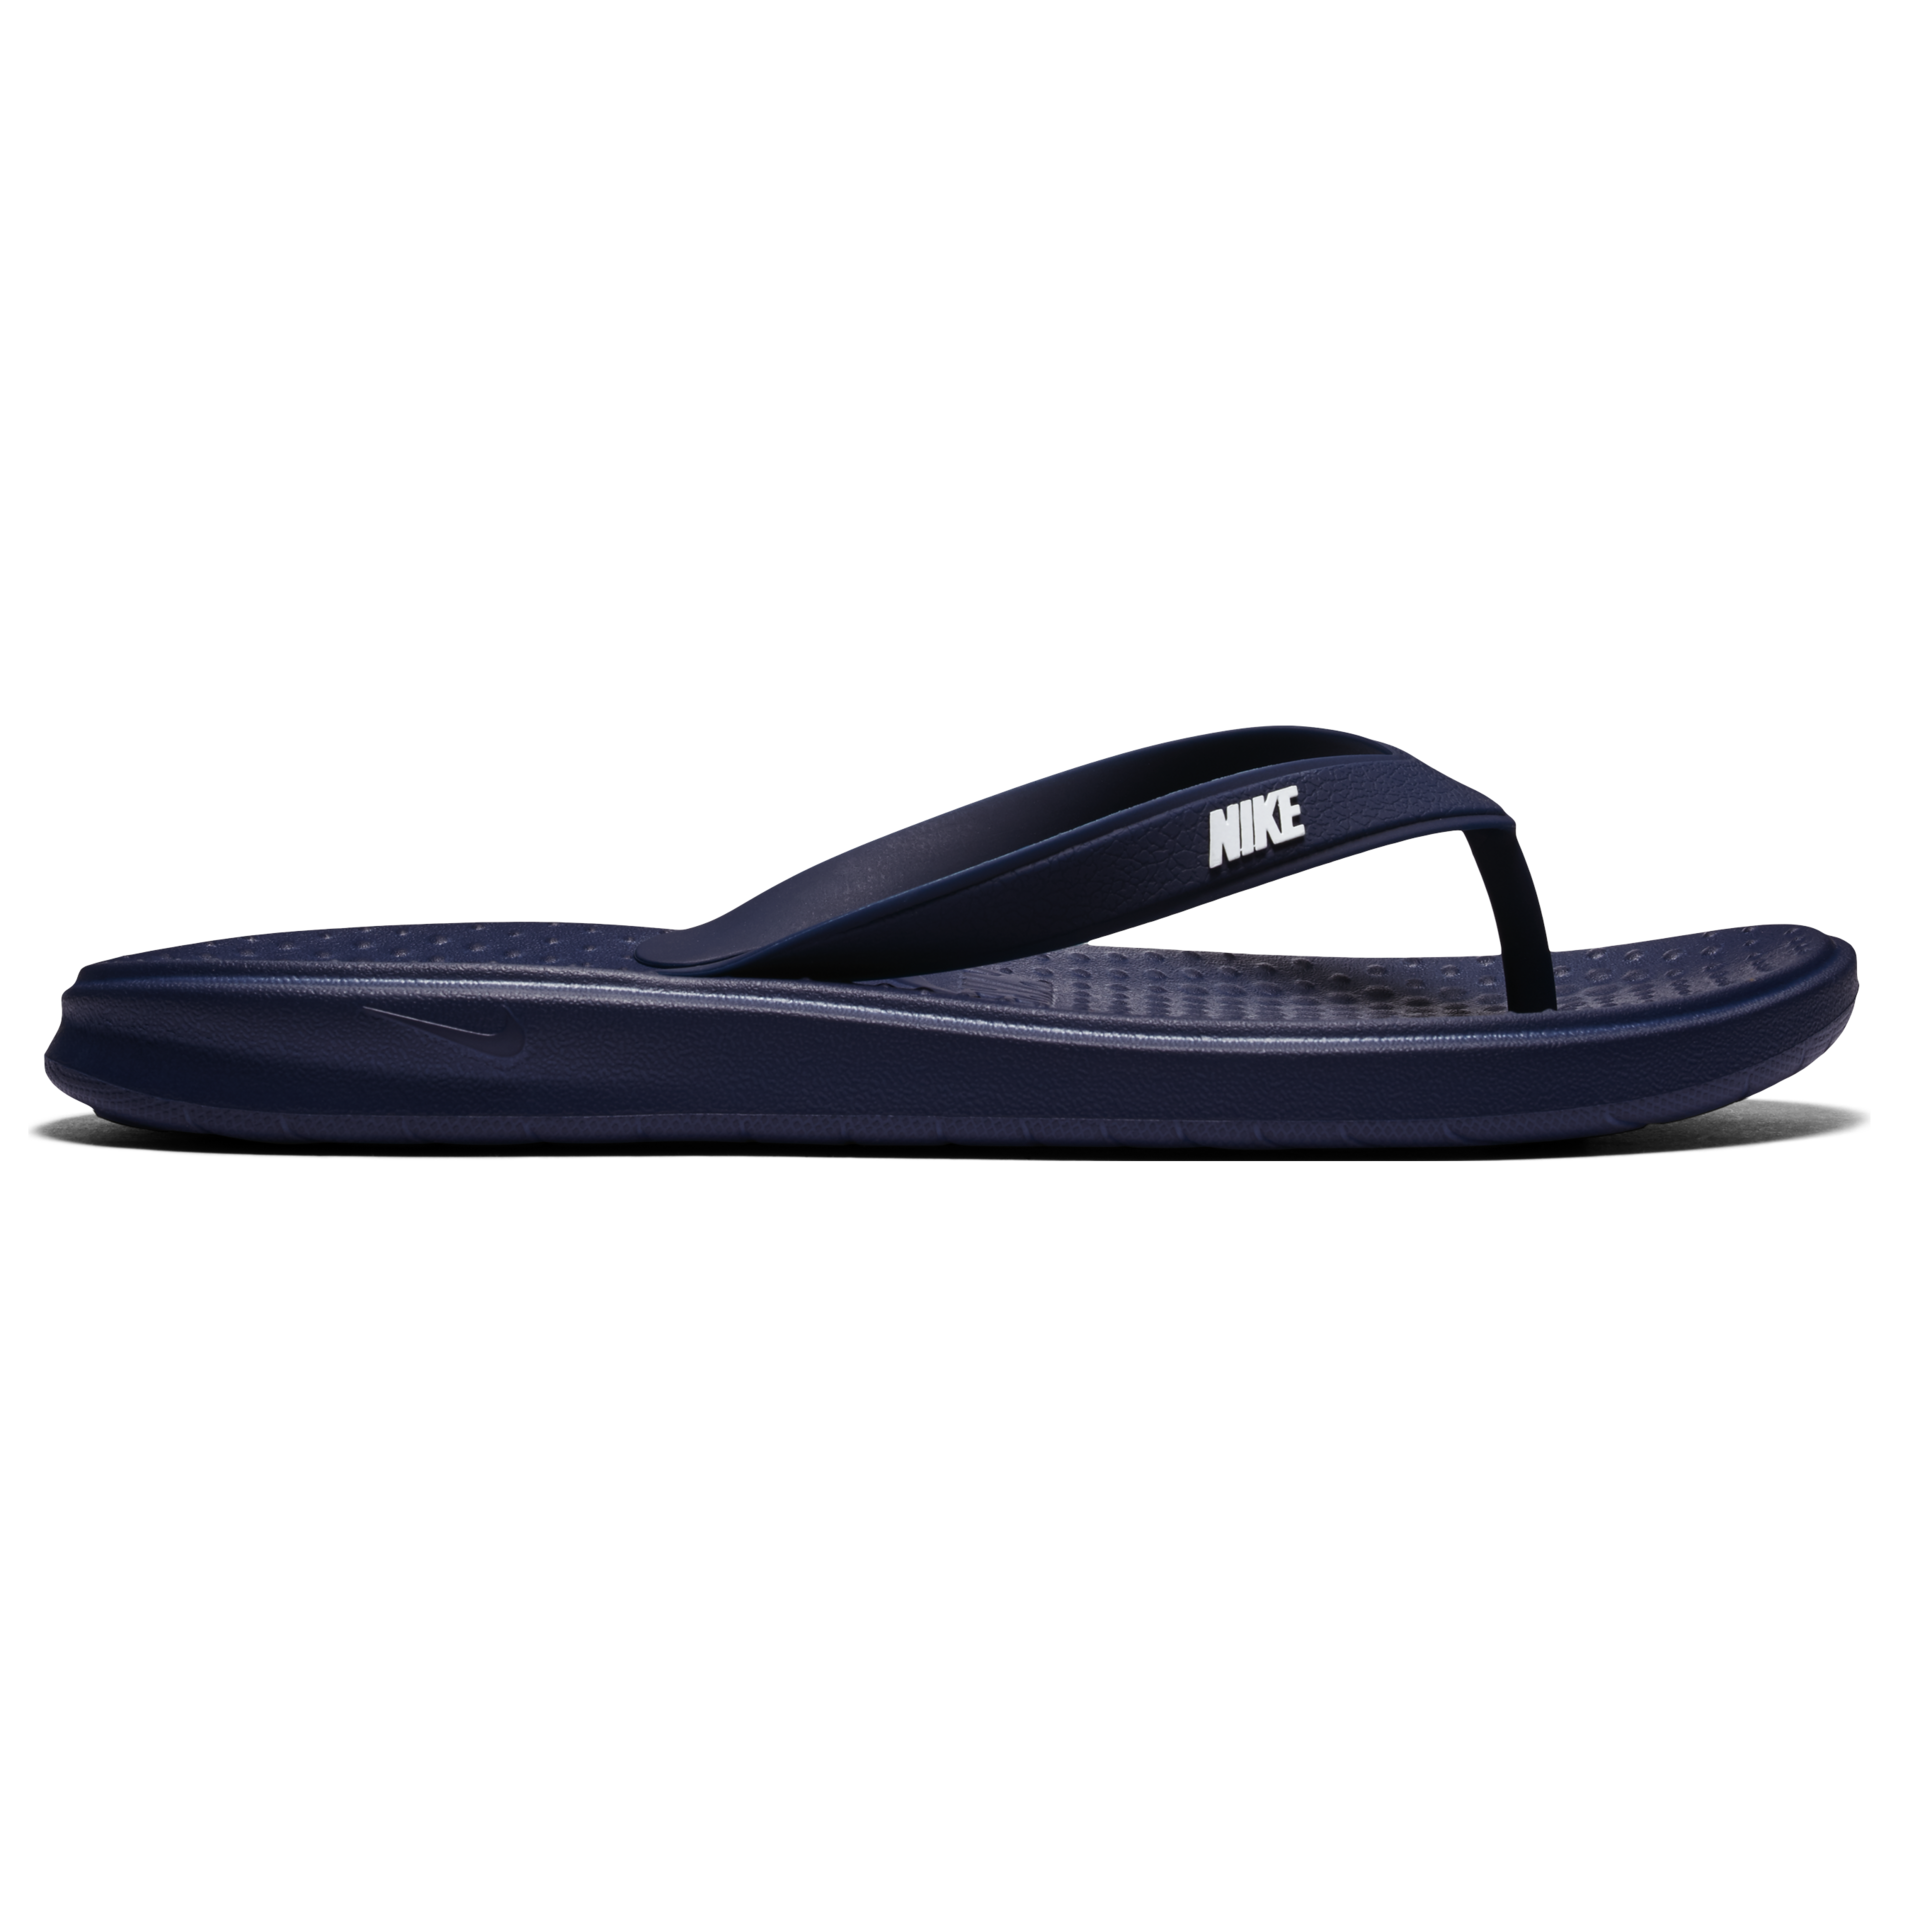 thong sandals s men swiss comforter alpine eva flops itm sole mens blk beach nike thongs flip comfort lightweight